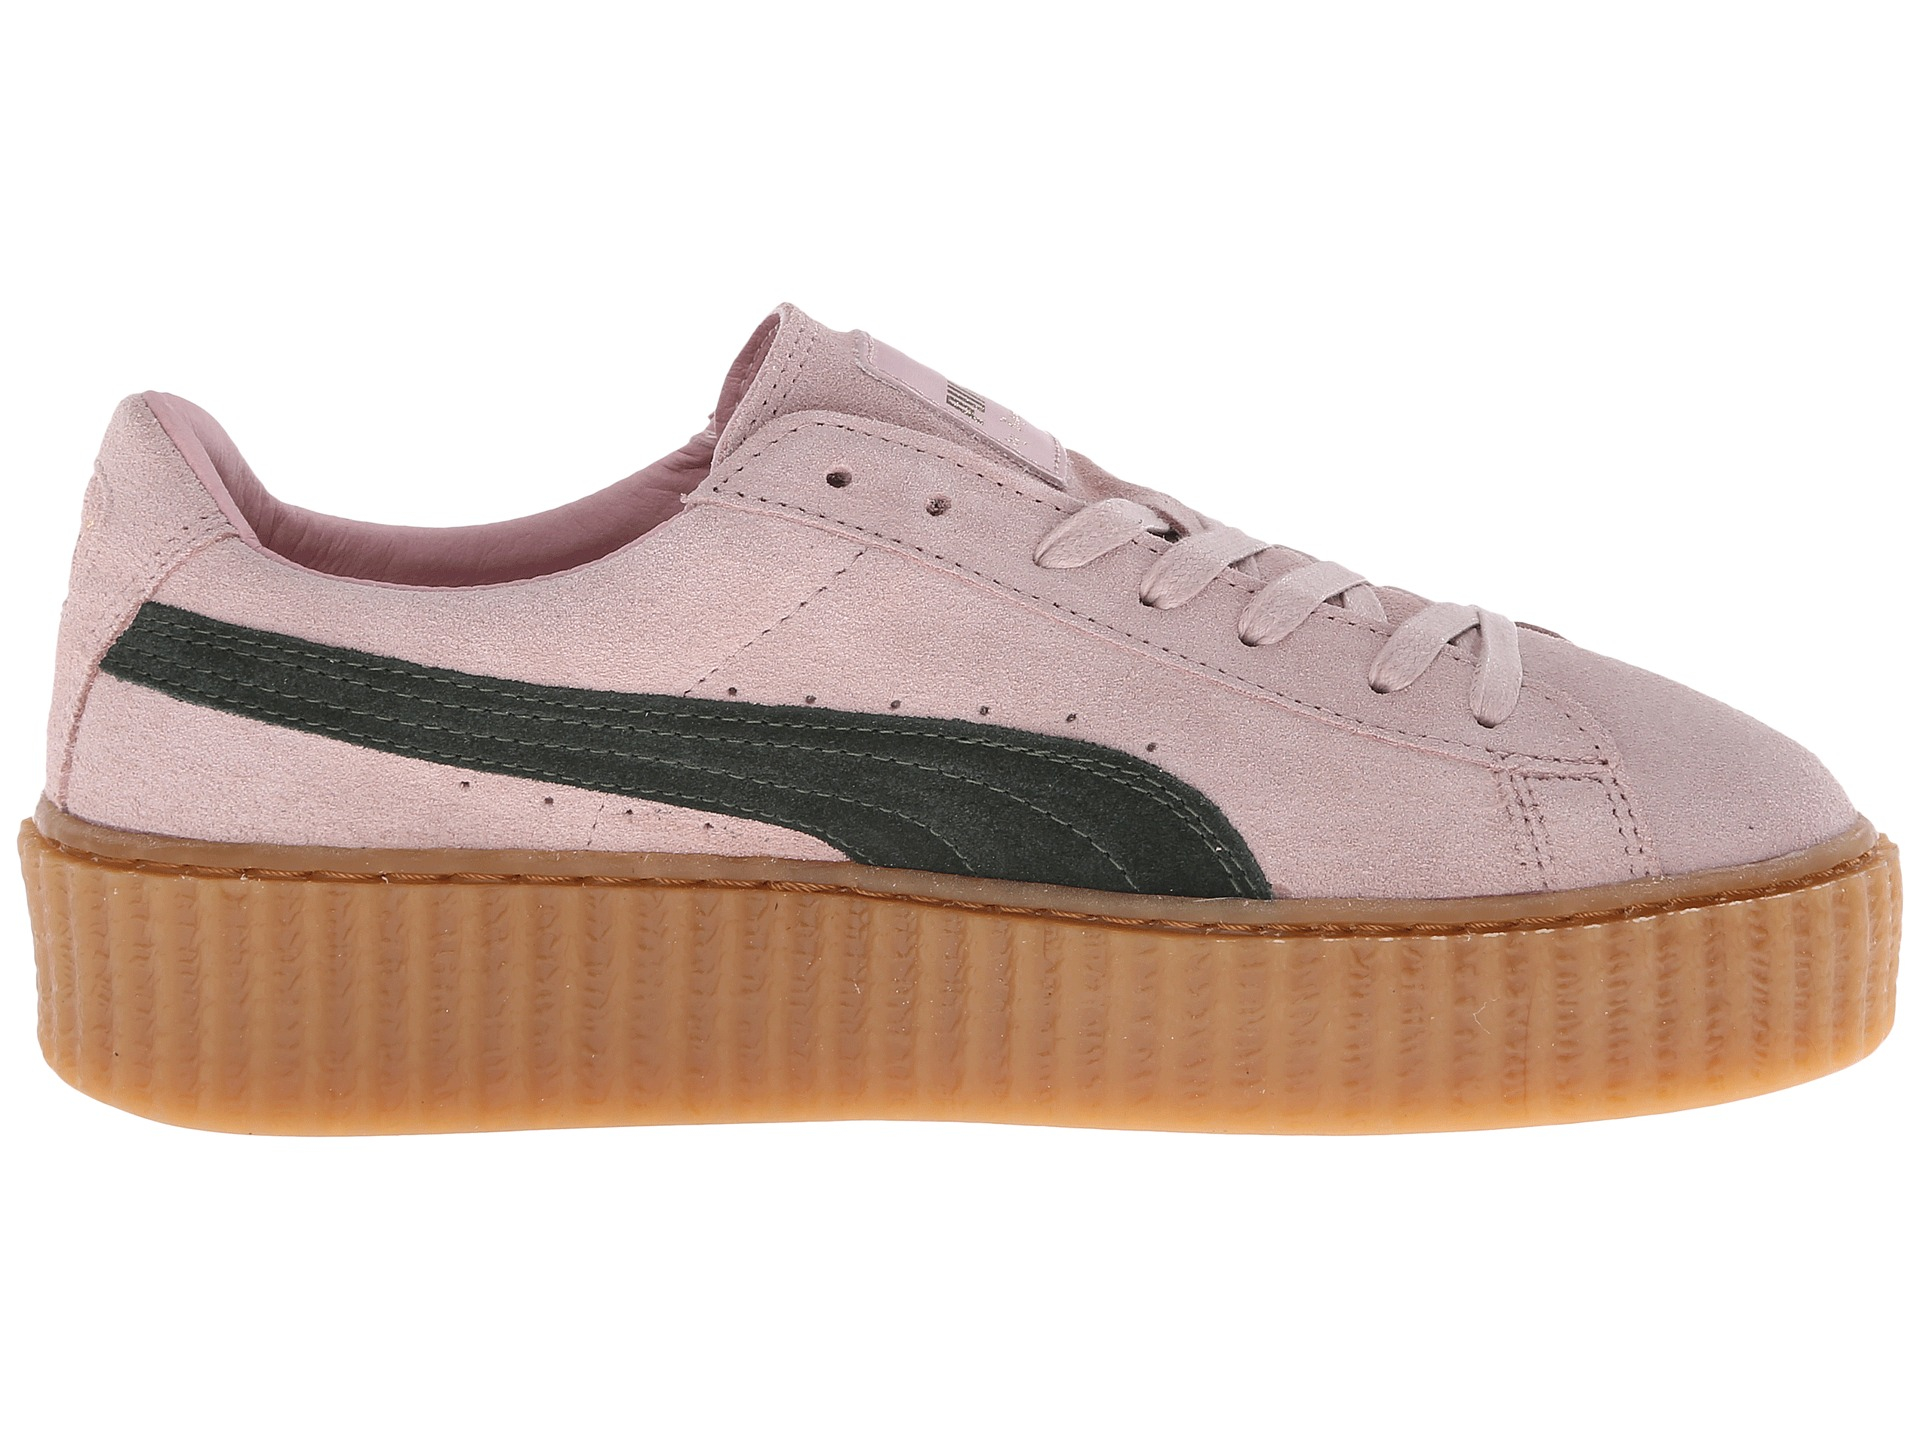 puma creepers beige suede. Black Bedroom Furniture Sets. Home Design Ideas